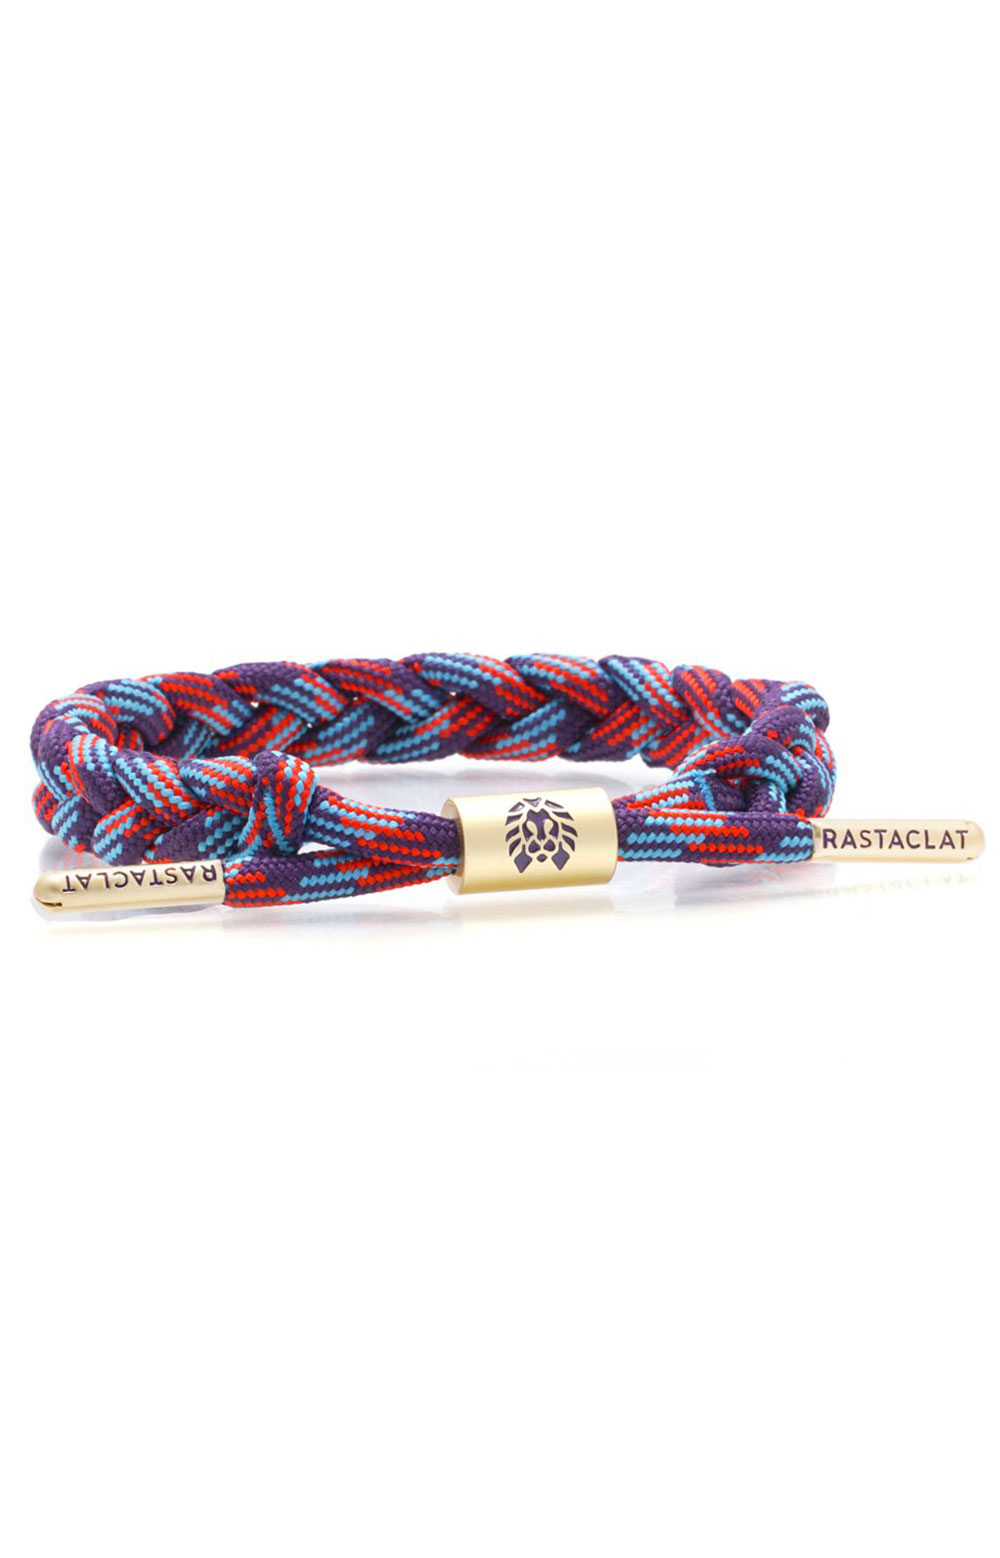 Fellowship Bracelets